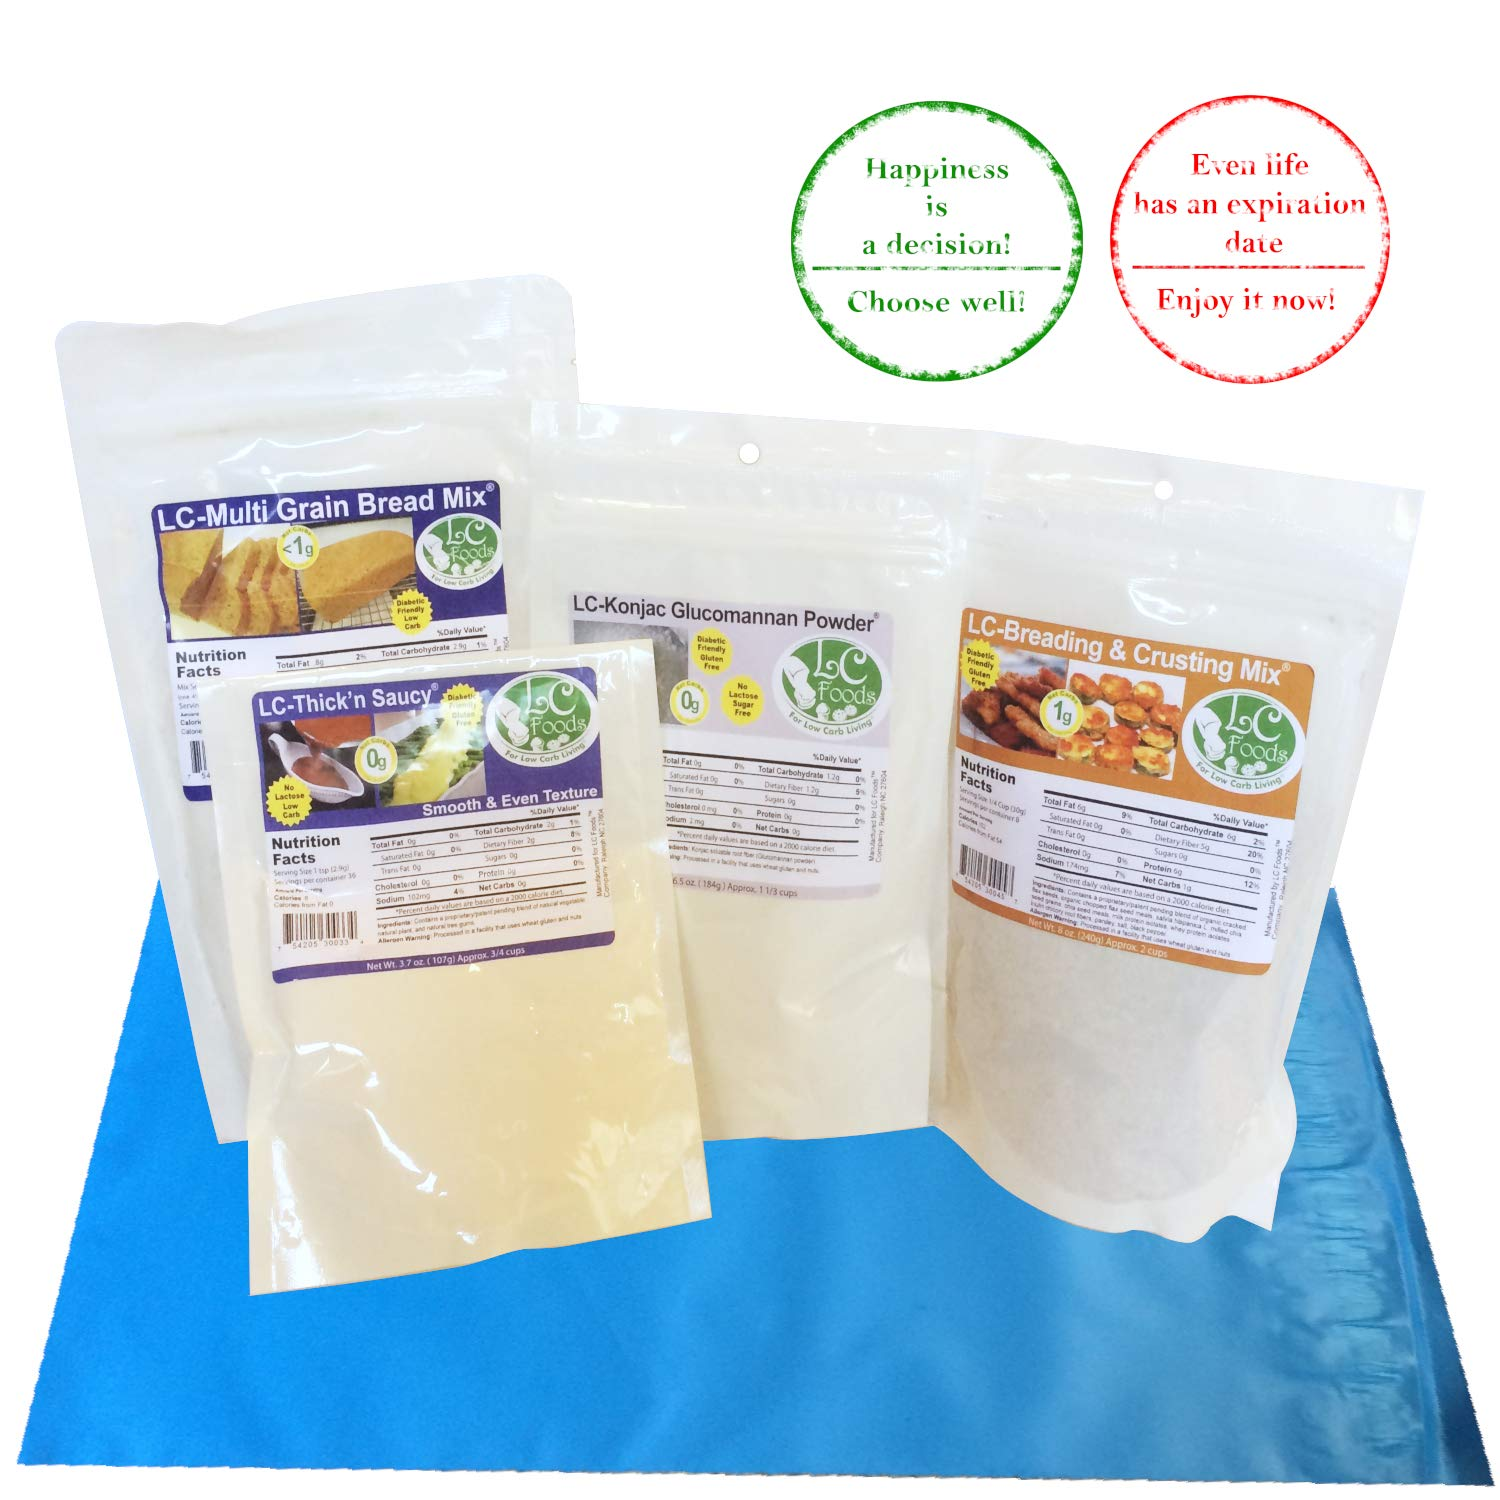 Low Carb Keto Bread Mix   Multi Grain Bread Mix + Gluten Free Breading & Crusting Mix + Thick n Saucy + Konjac Glucomannan by LC Foods   Diet Protein Food   Keto Baking Foods